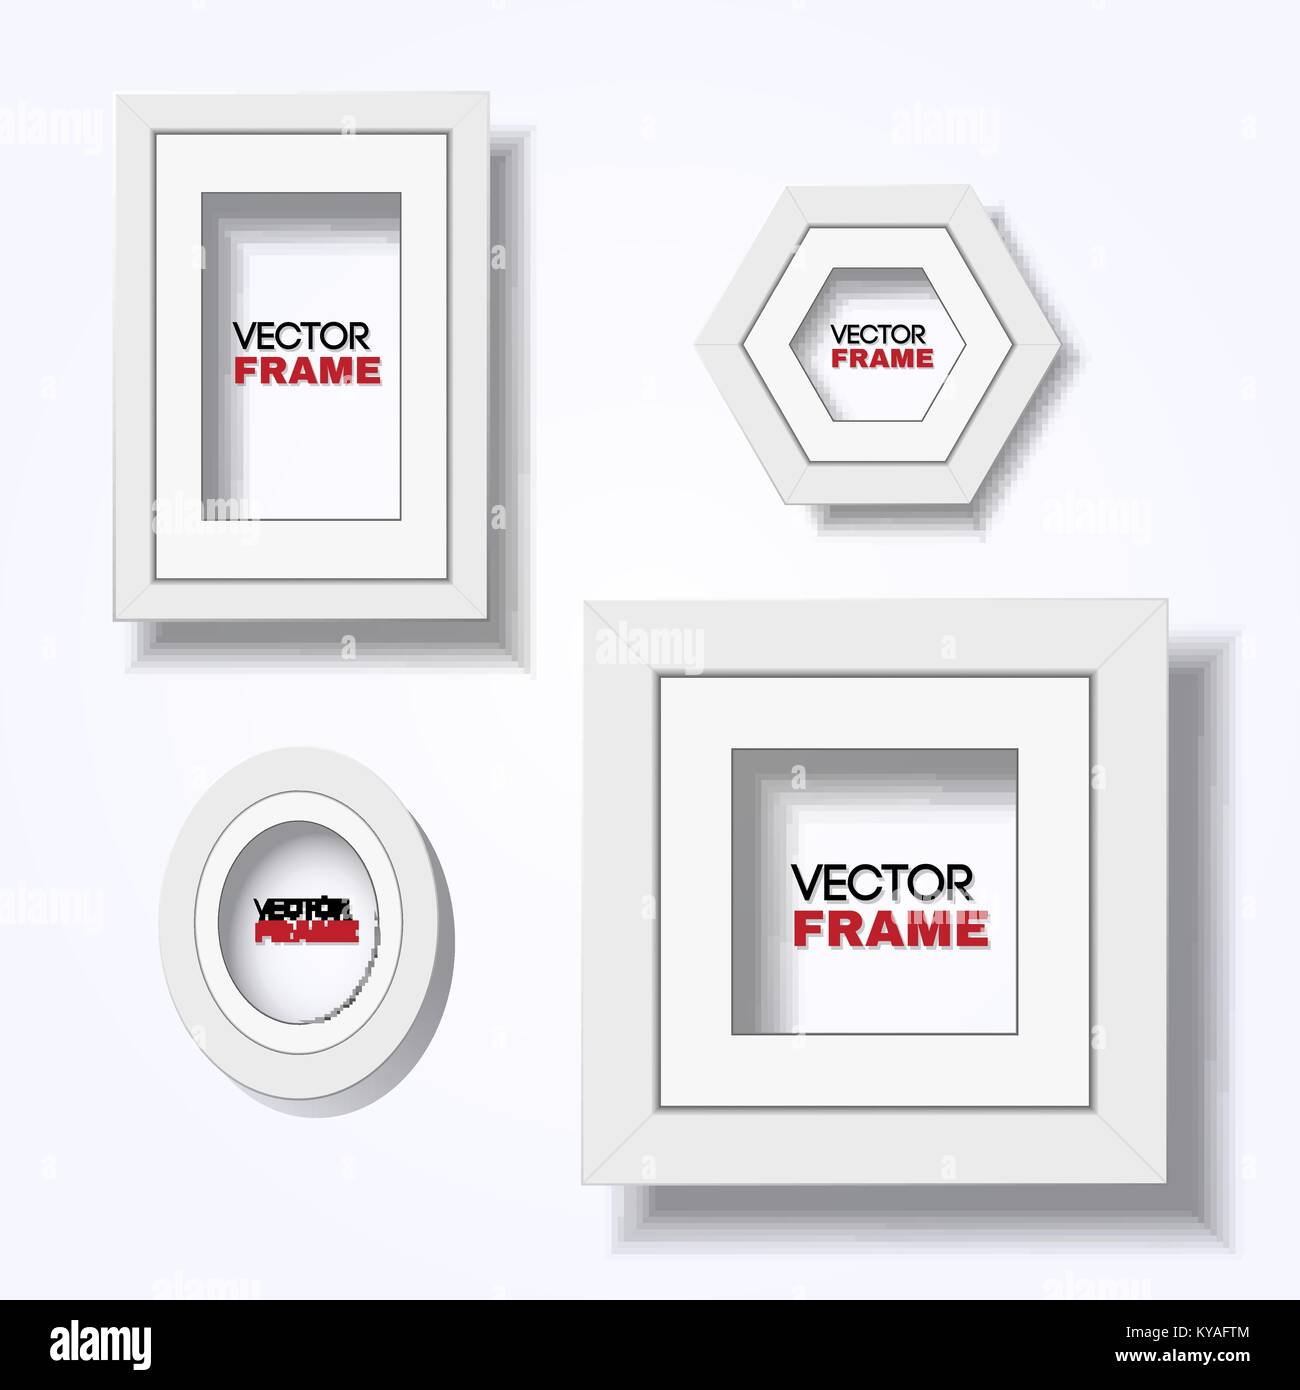 Set of realistic modern white certificate frames hanging on wall - A4, square, oval, and hexagonal shapes - Stock Image